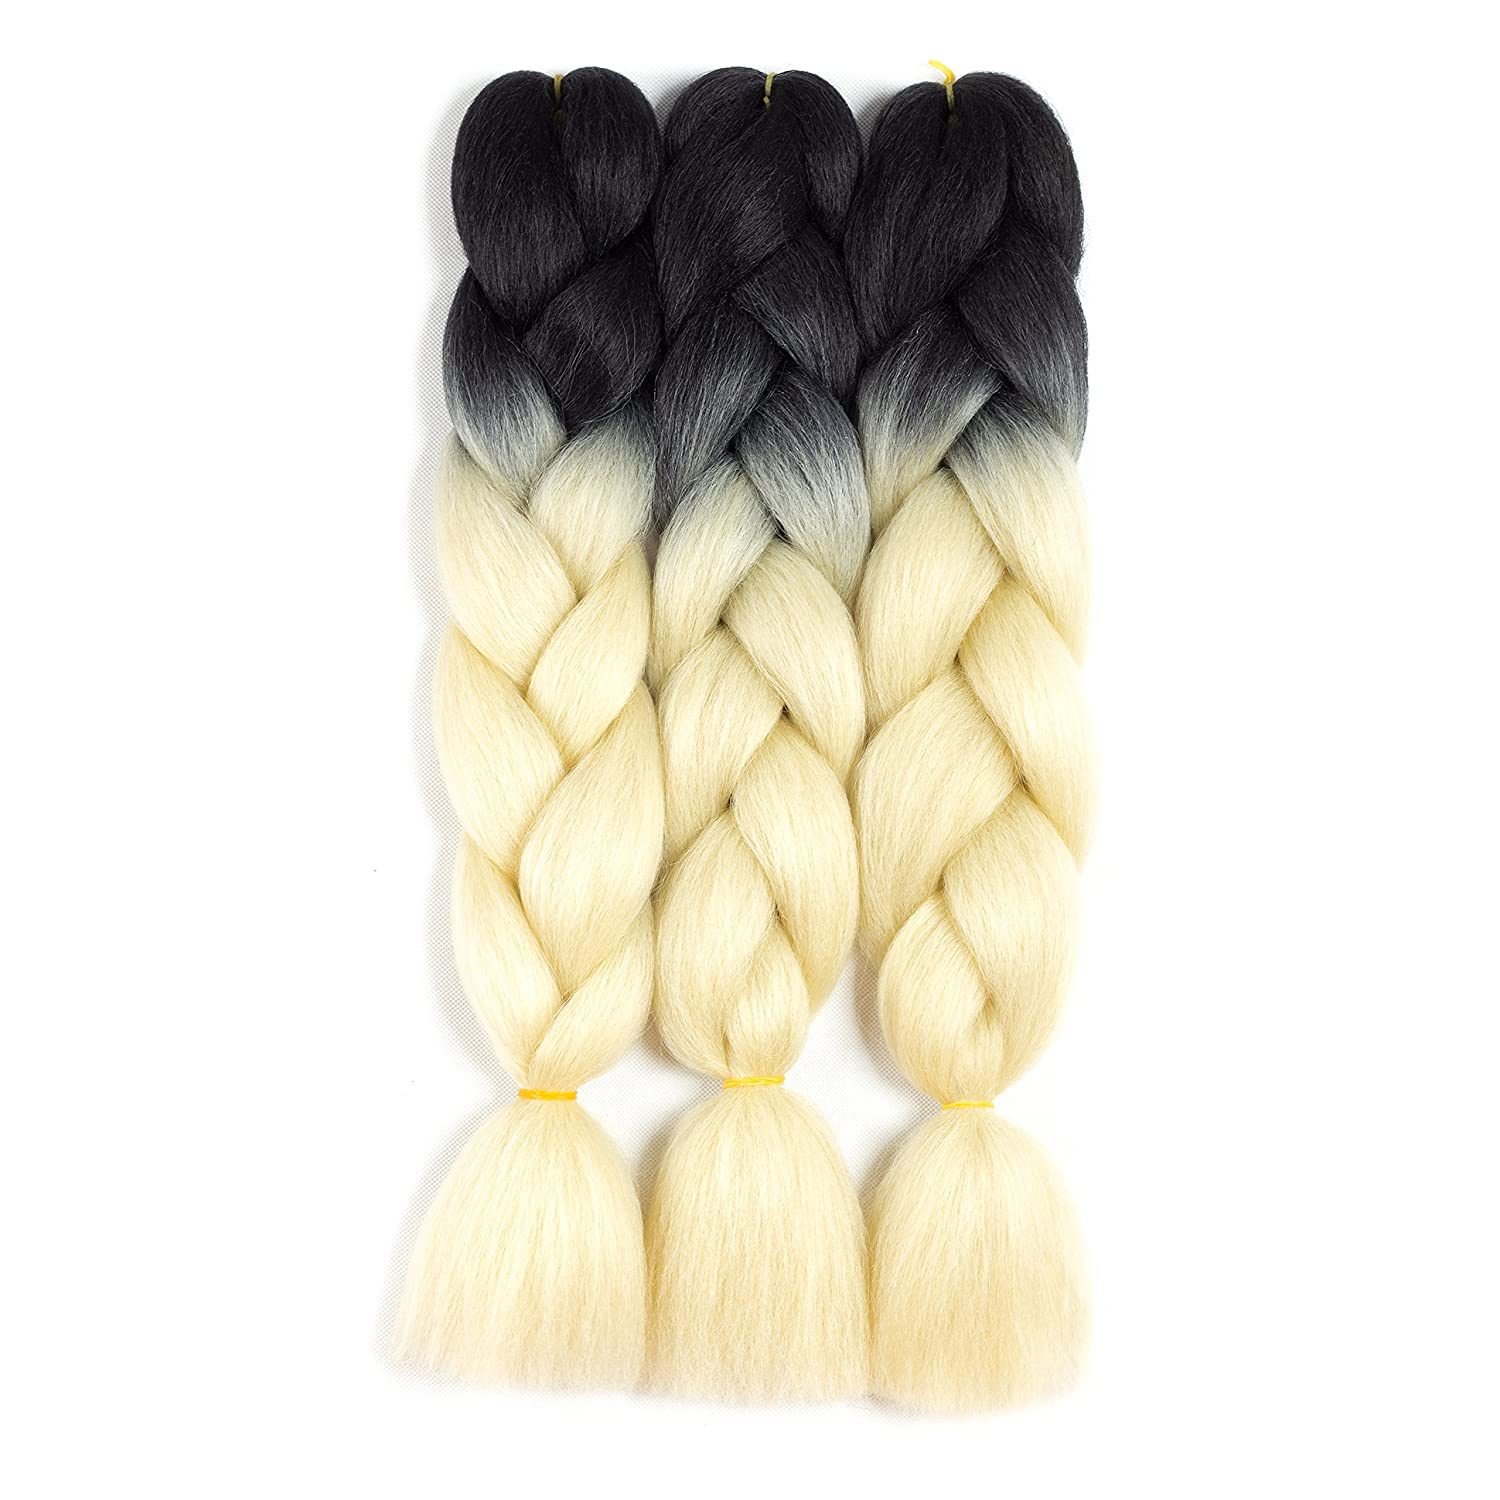 SONNET Synthetic Ombre Jumbo Braiding Hair 3bundles/lot 300g Kanekalon Fiber Hair Extension for Box Twist Braiding with 10pcs Free Decoration Dreadlock Deads (Black/L-Purple)